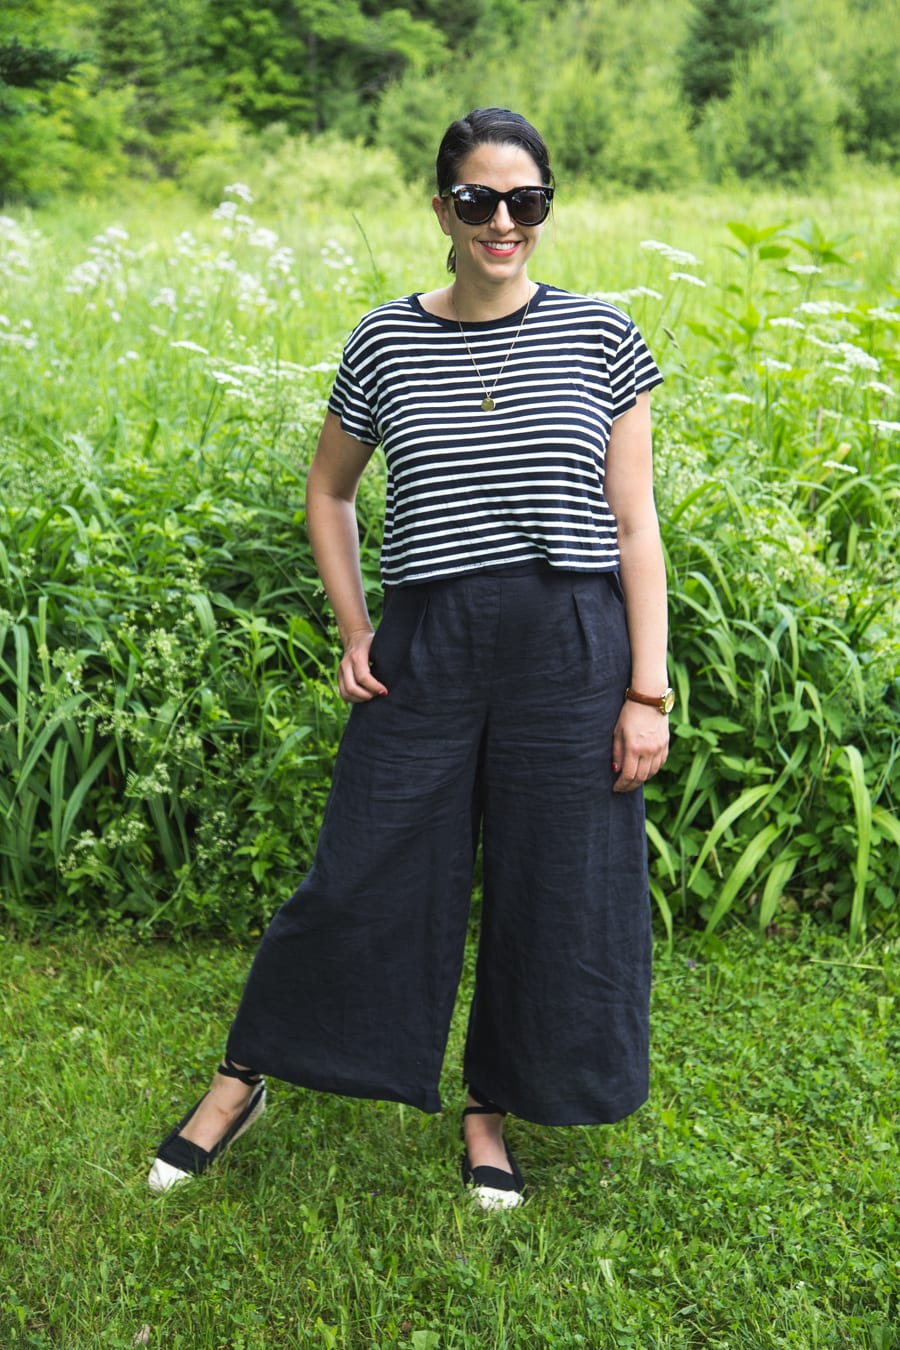 Flint Pants by Megan Nielsen in linen // Closet Case Patterns